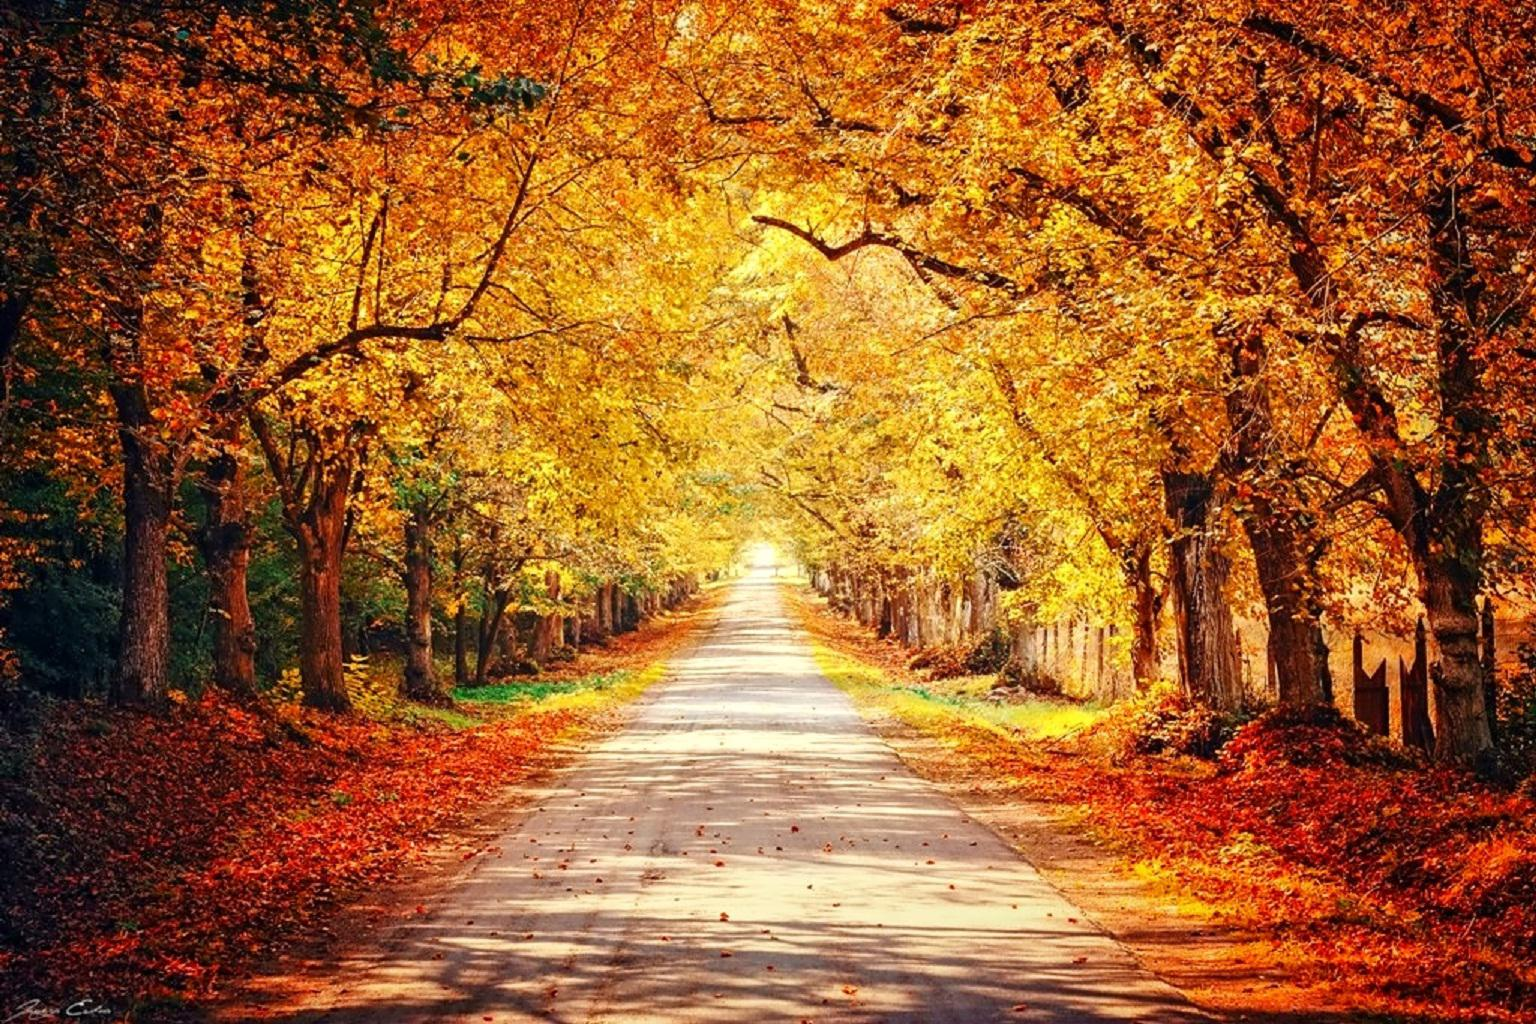 Fall Hd Wallpapers For Mac October Wallpapers High Quality Download Free